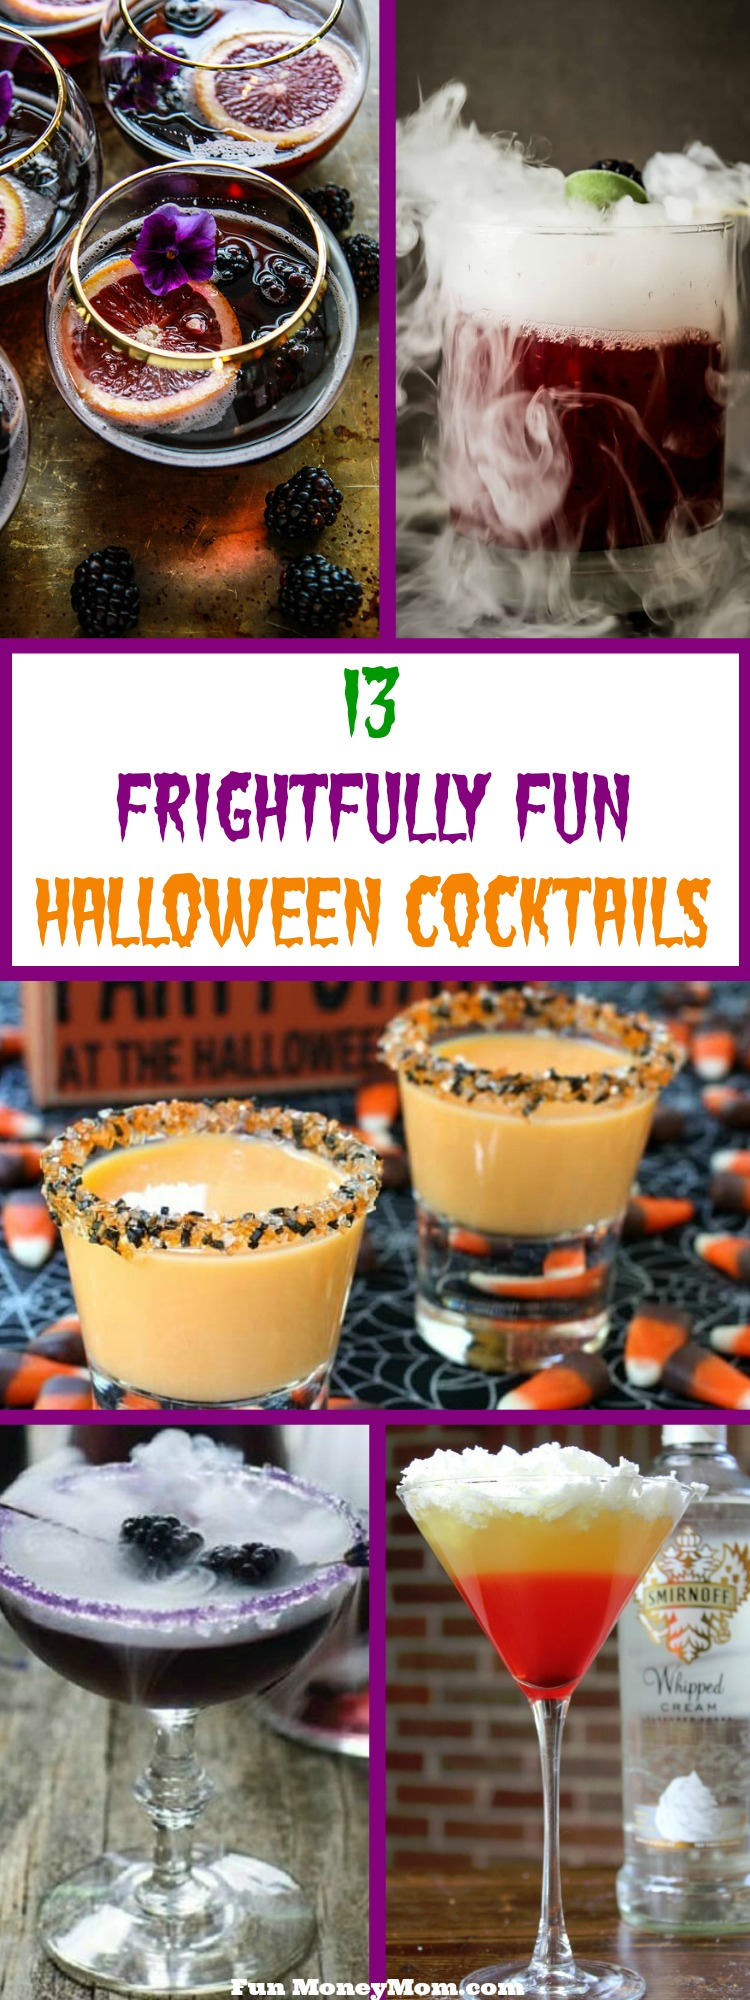 13 frightfully fun halloween cocktails fun money mom Good halloween cocktails